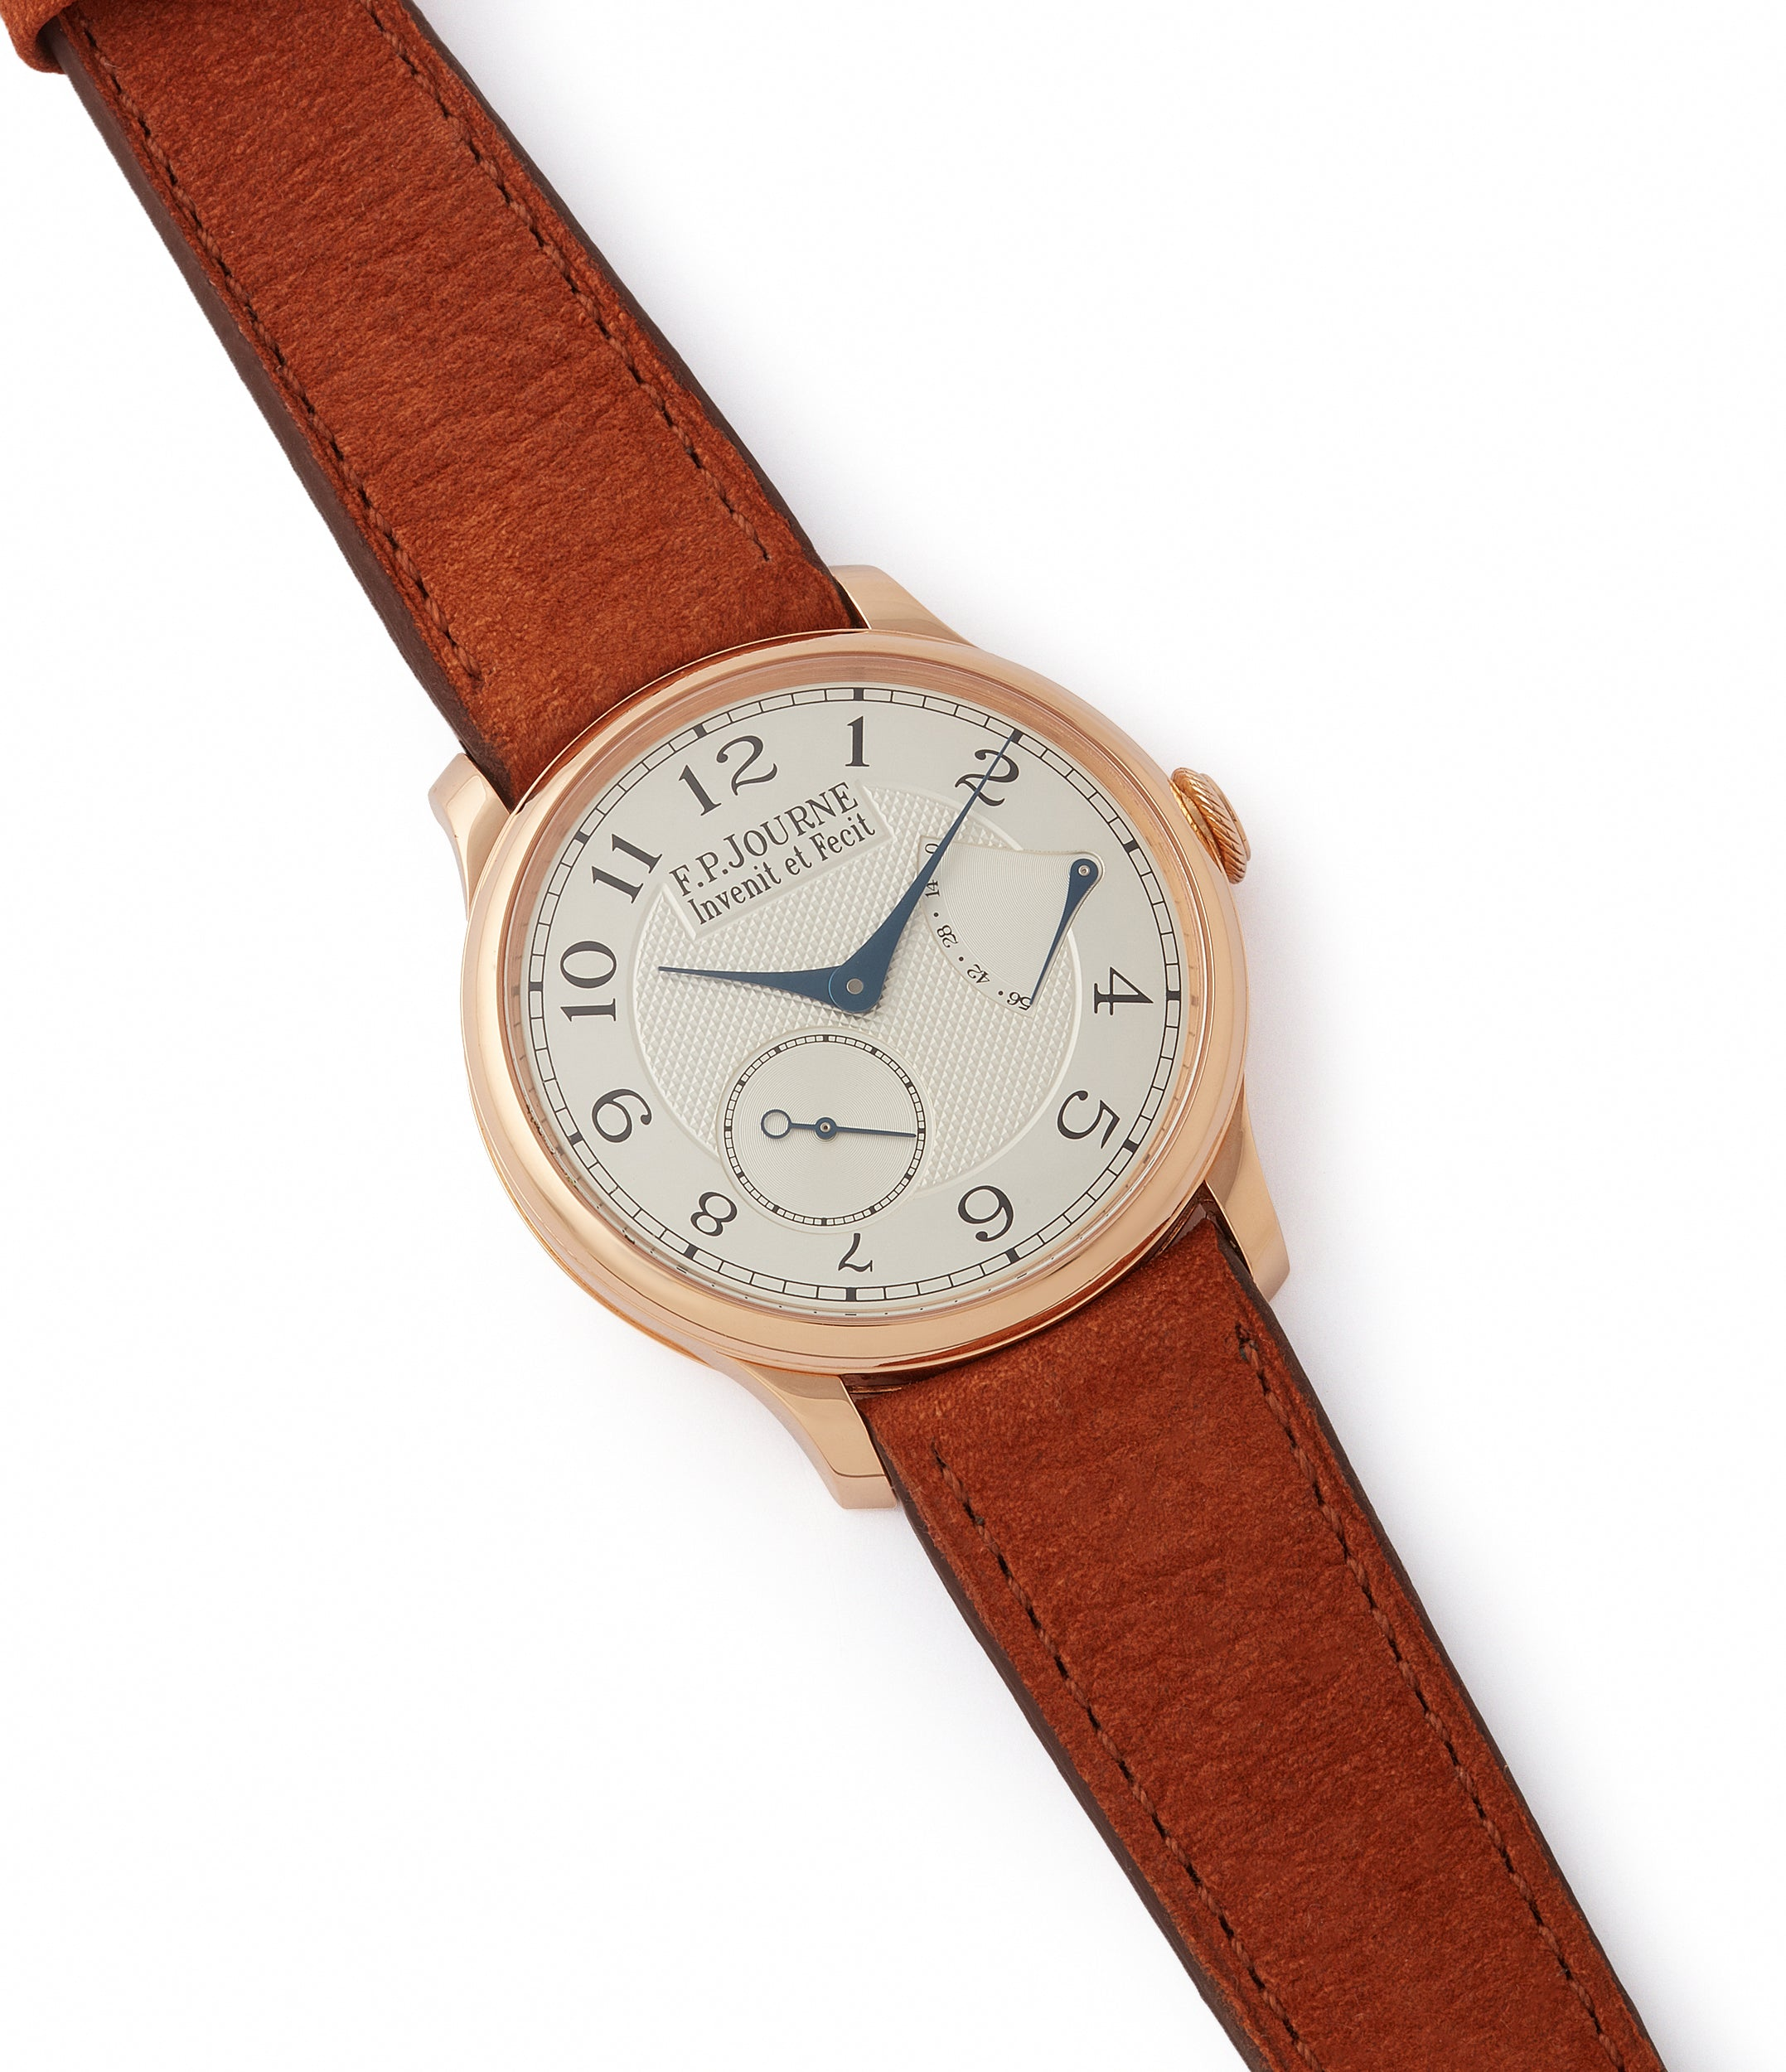 selling F. P. Journe Chronometre Souverain CS.RG.38 rose gold silver dial watch for sale online at A Collected Man London UK specialist of rare watches